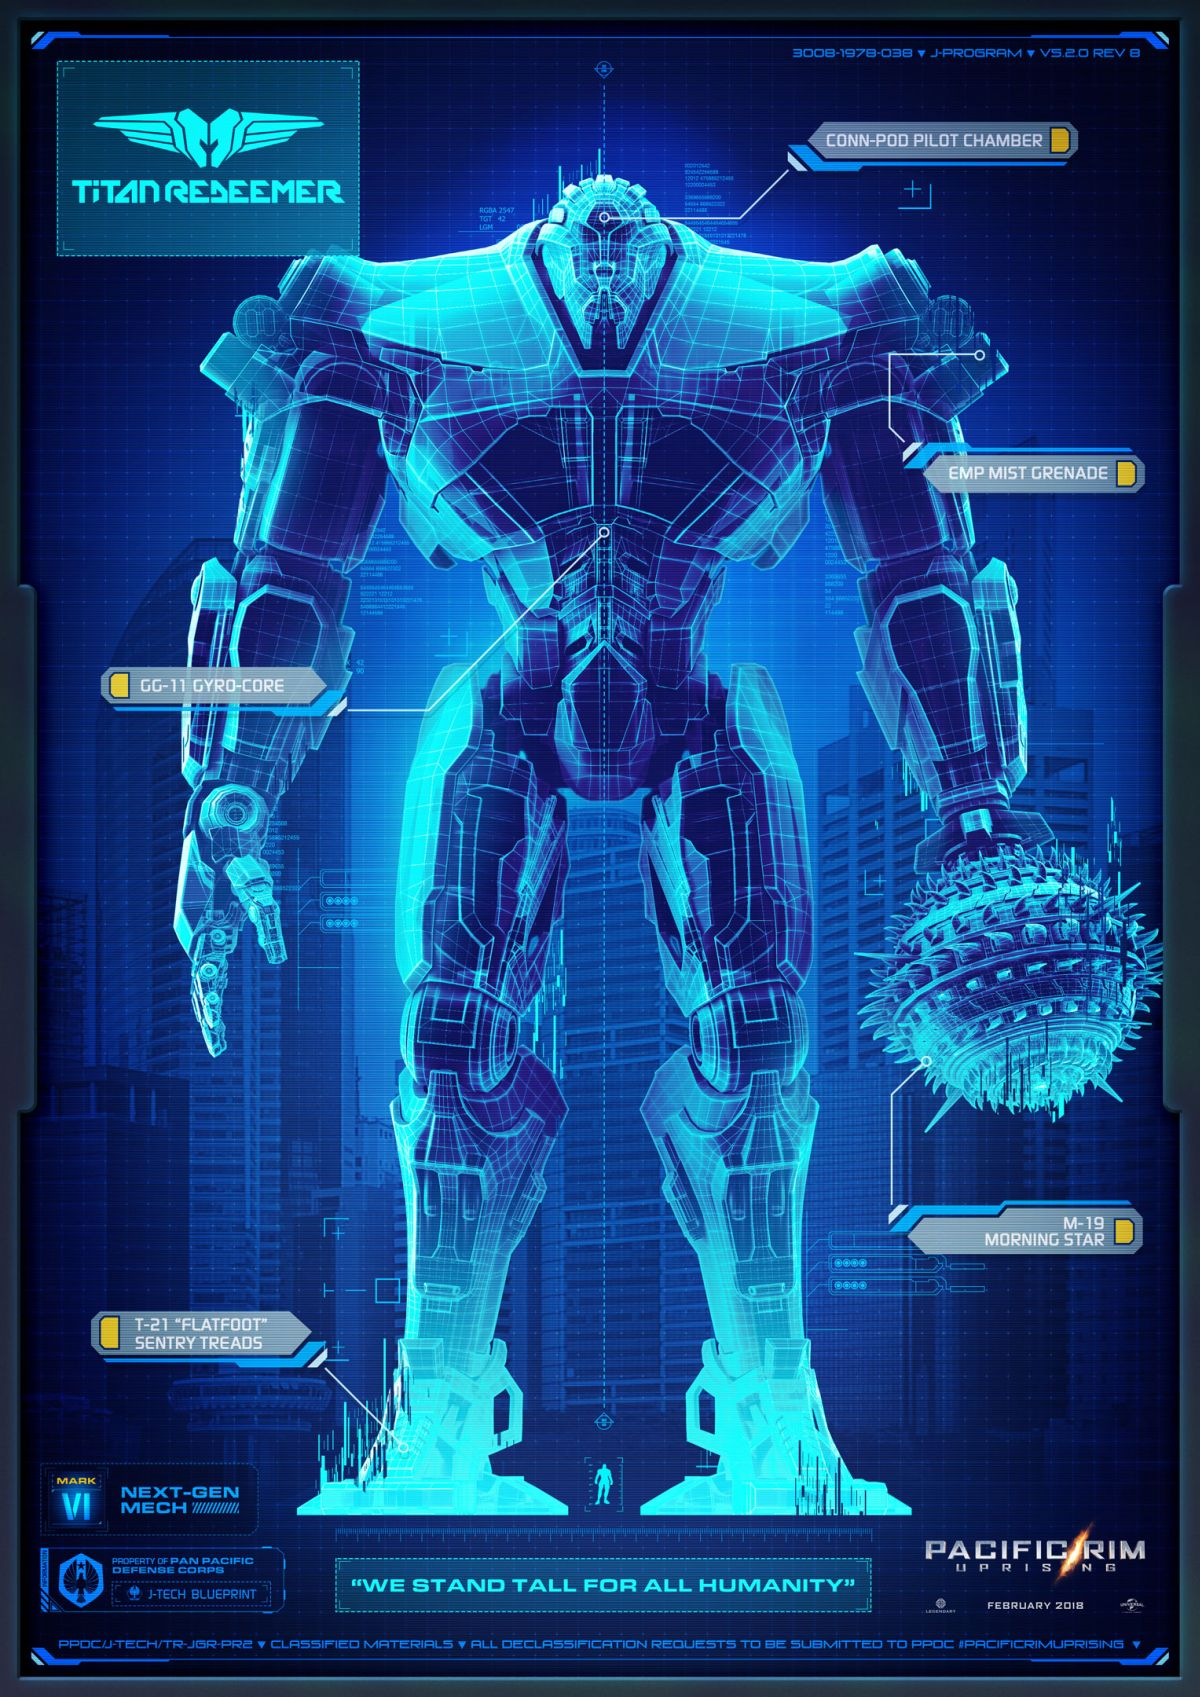 The biggest gripe I have with Pacific Rim: Uprising isn't ... Pacific Rim Blueprints